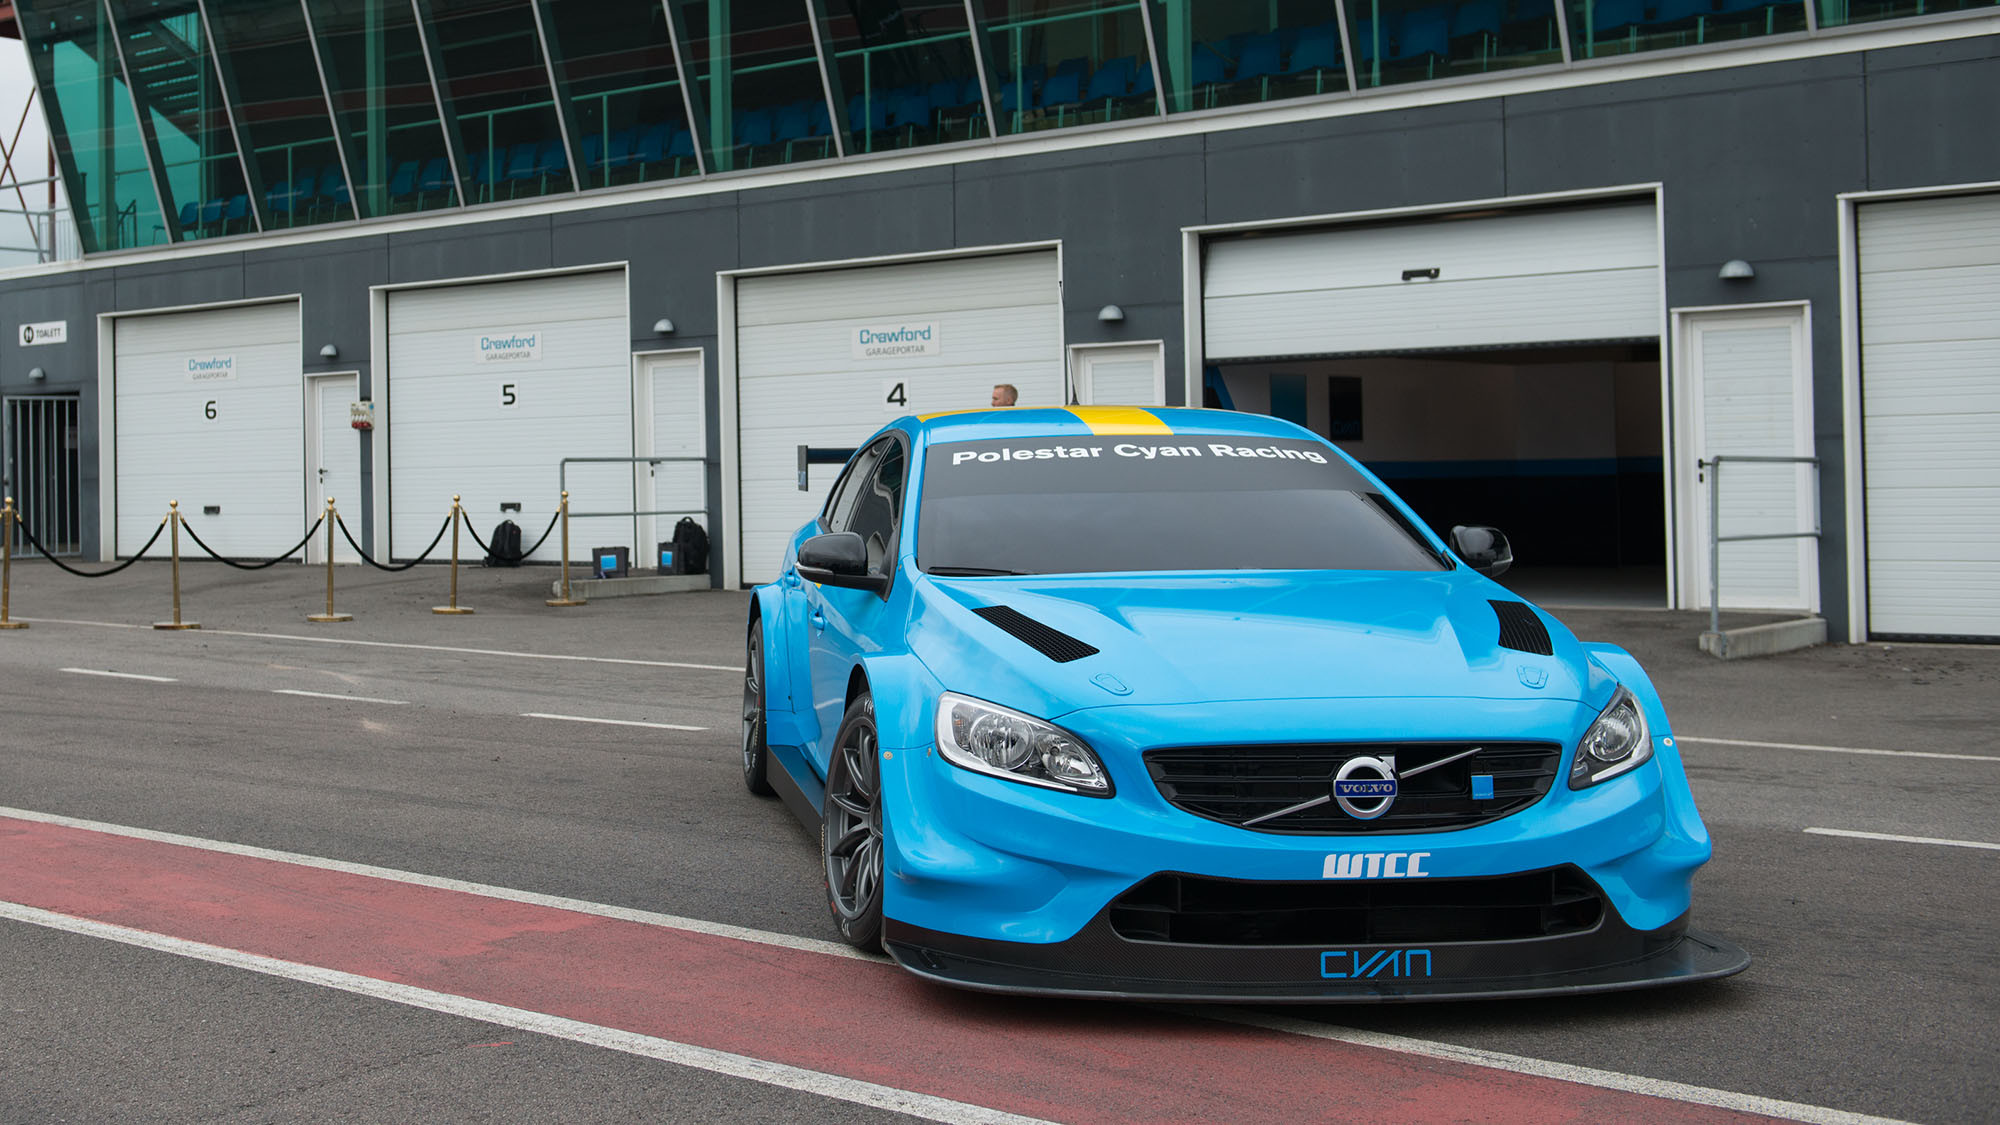 Volvo announce multi-year WTCC programme with the S60 Polestar TC1 - TouringCarTimes